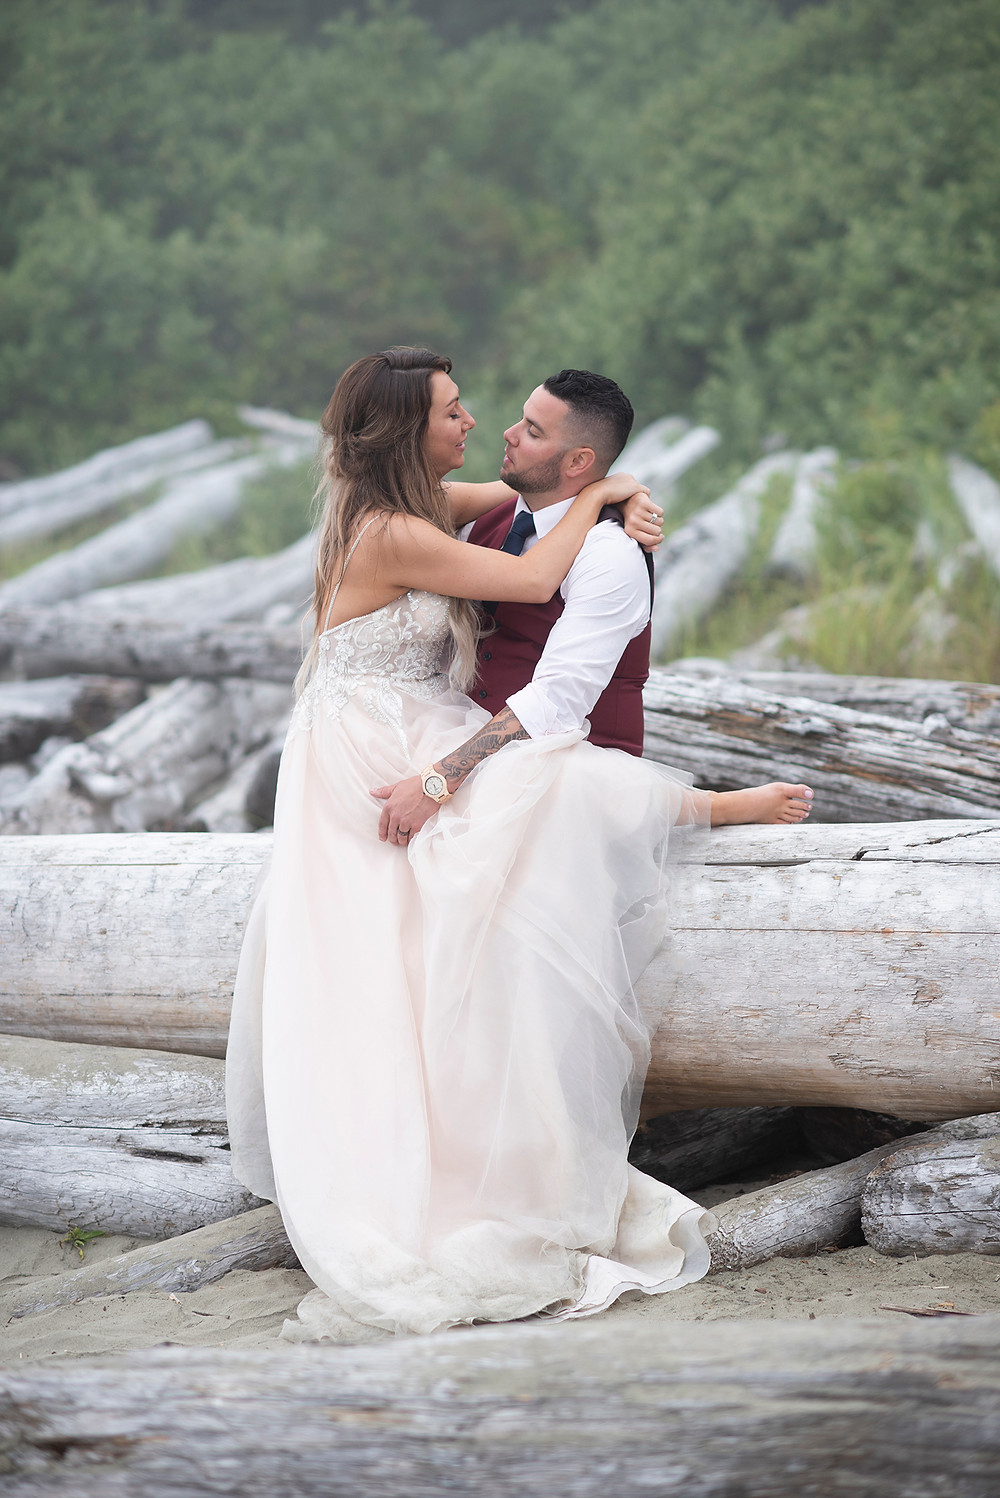 bride sits on groom and looks into his eyes at Tofino beach wedding. Photographed by Kaitlyn Shea